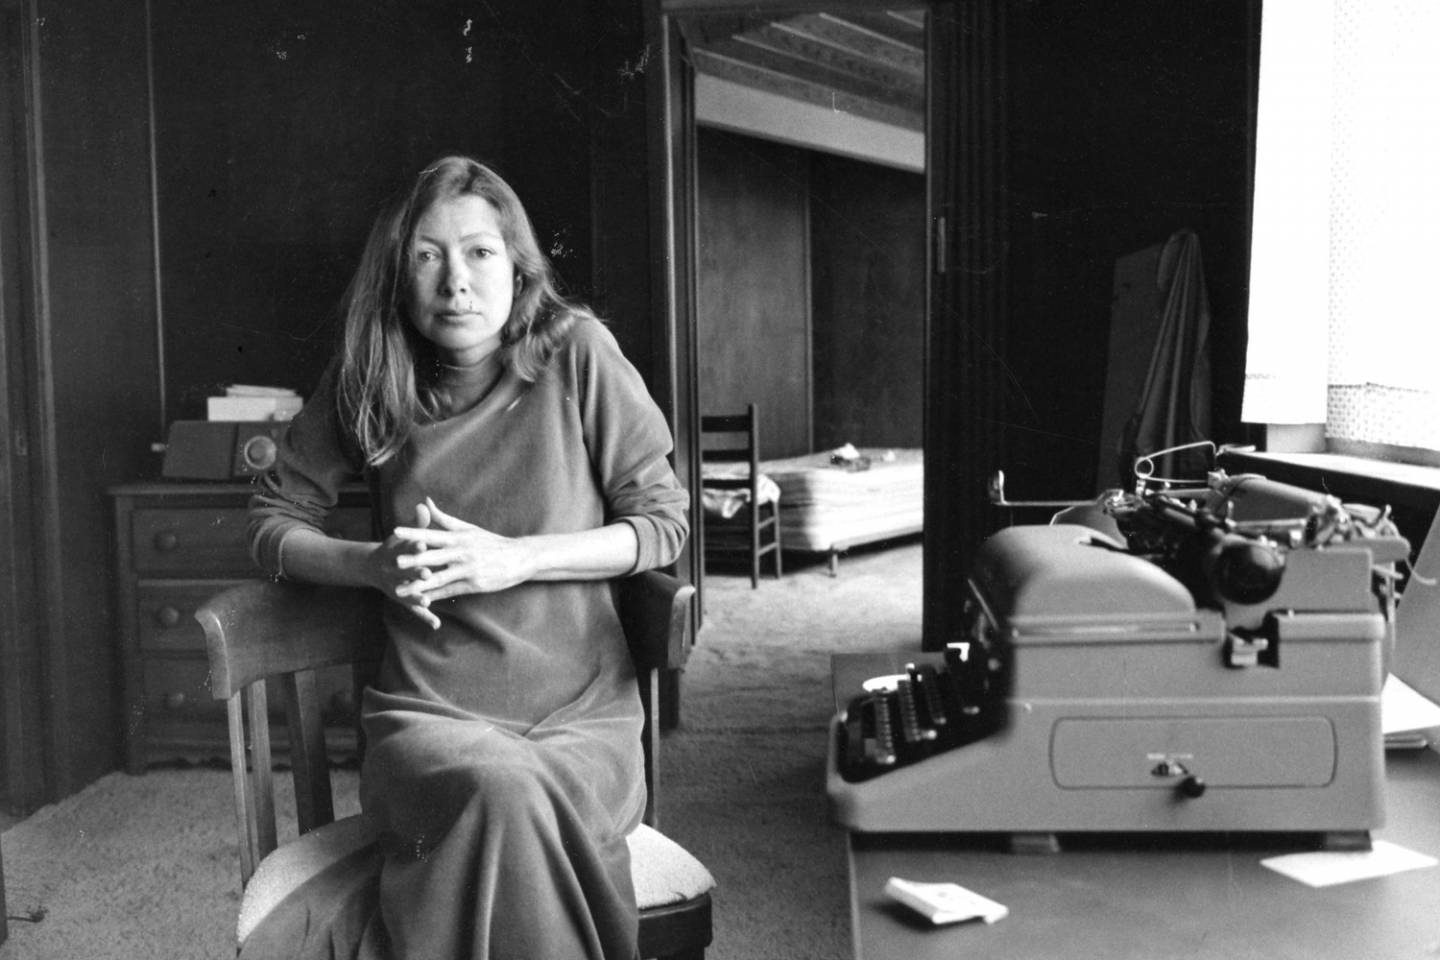 Lindsay | Joan Didion: Living and Writing Between LA and New York City | Photo by Jill Krementz, 1972